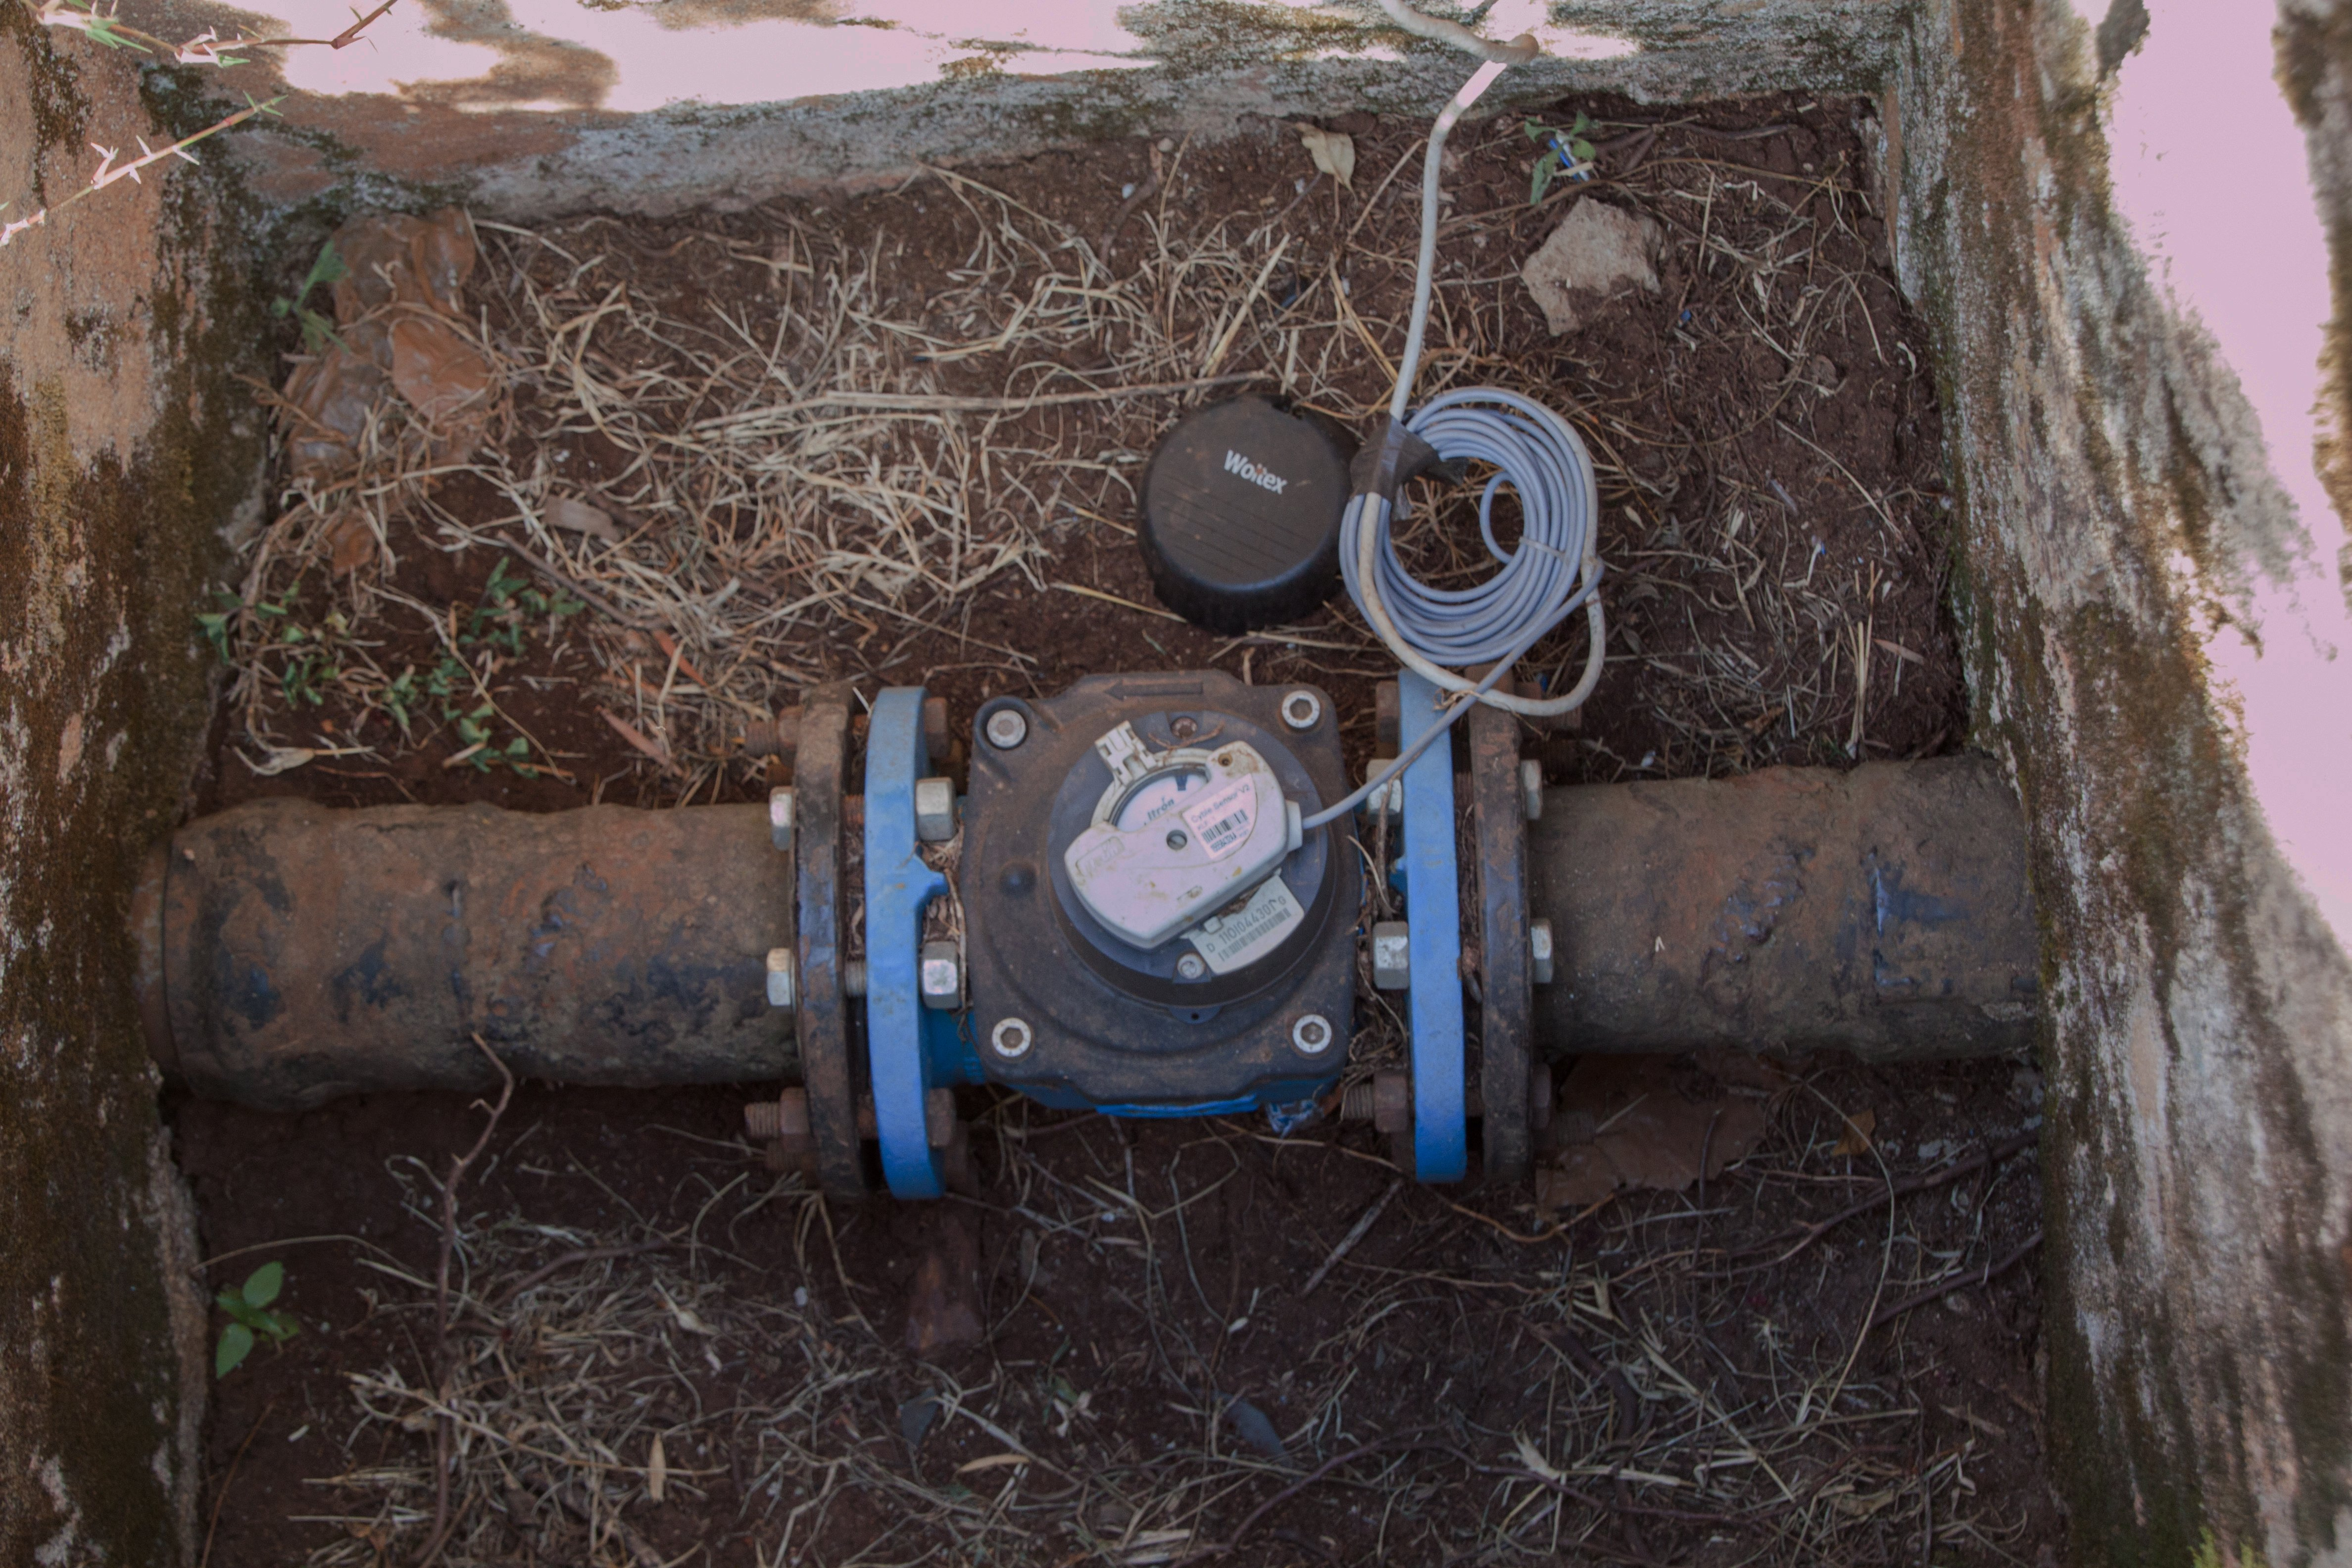 Retrofitting a remote sensor to the water meter